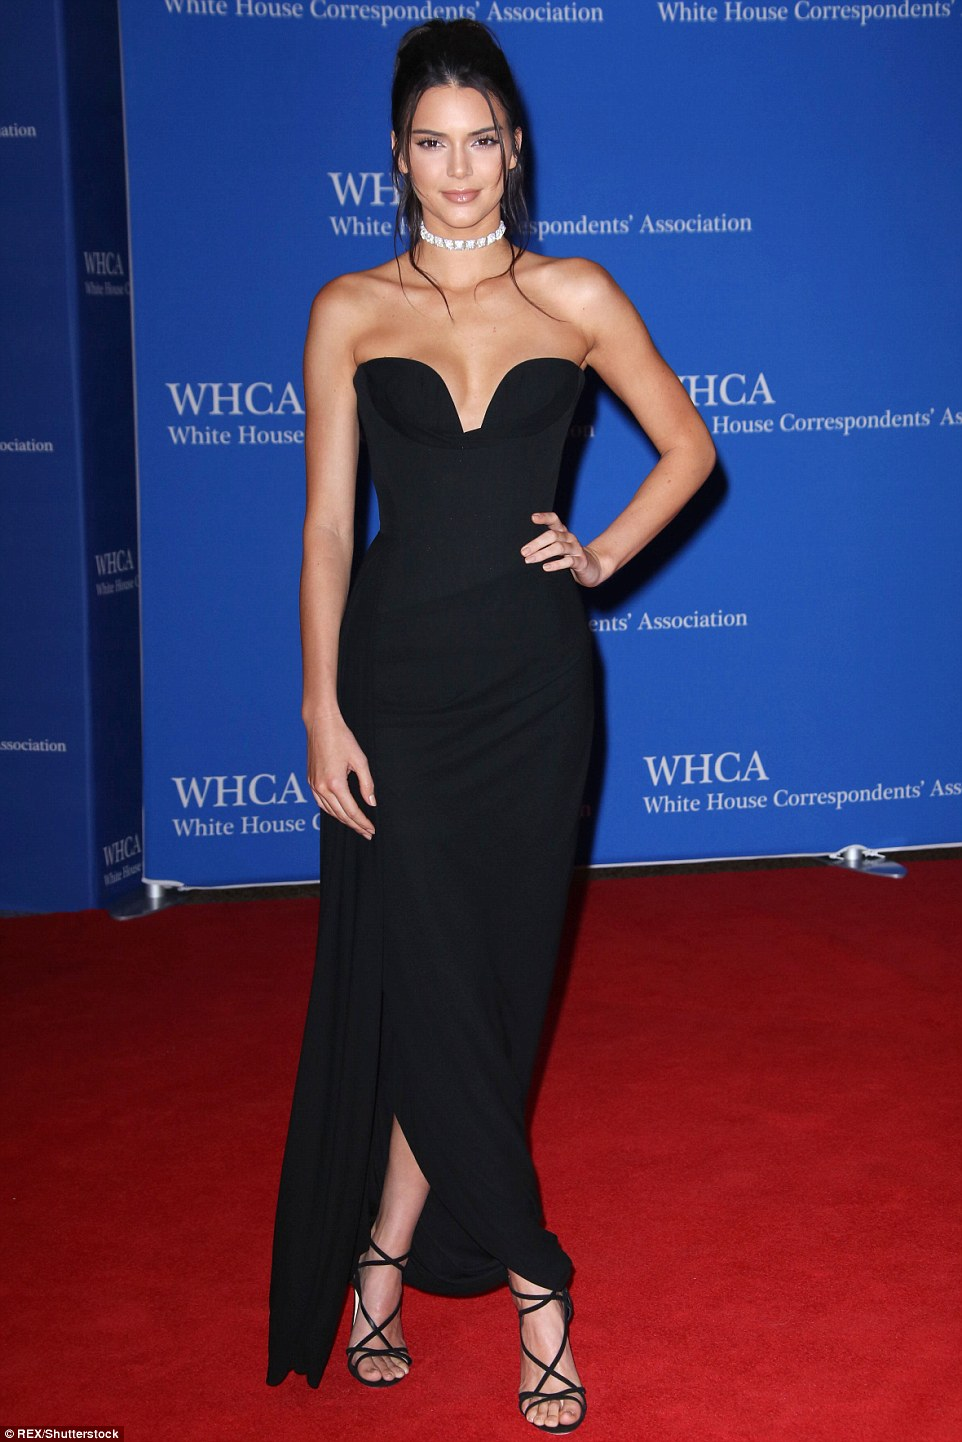 Kendall Jenner wears strapless gown for the White House Correspondents' Dinner